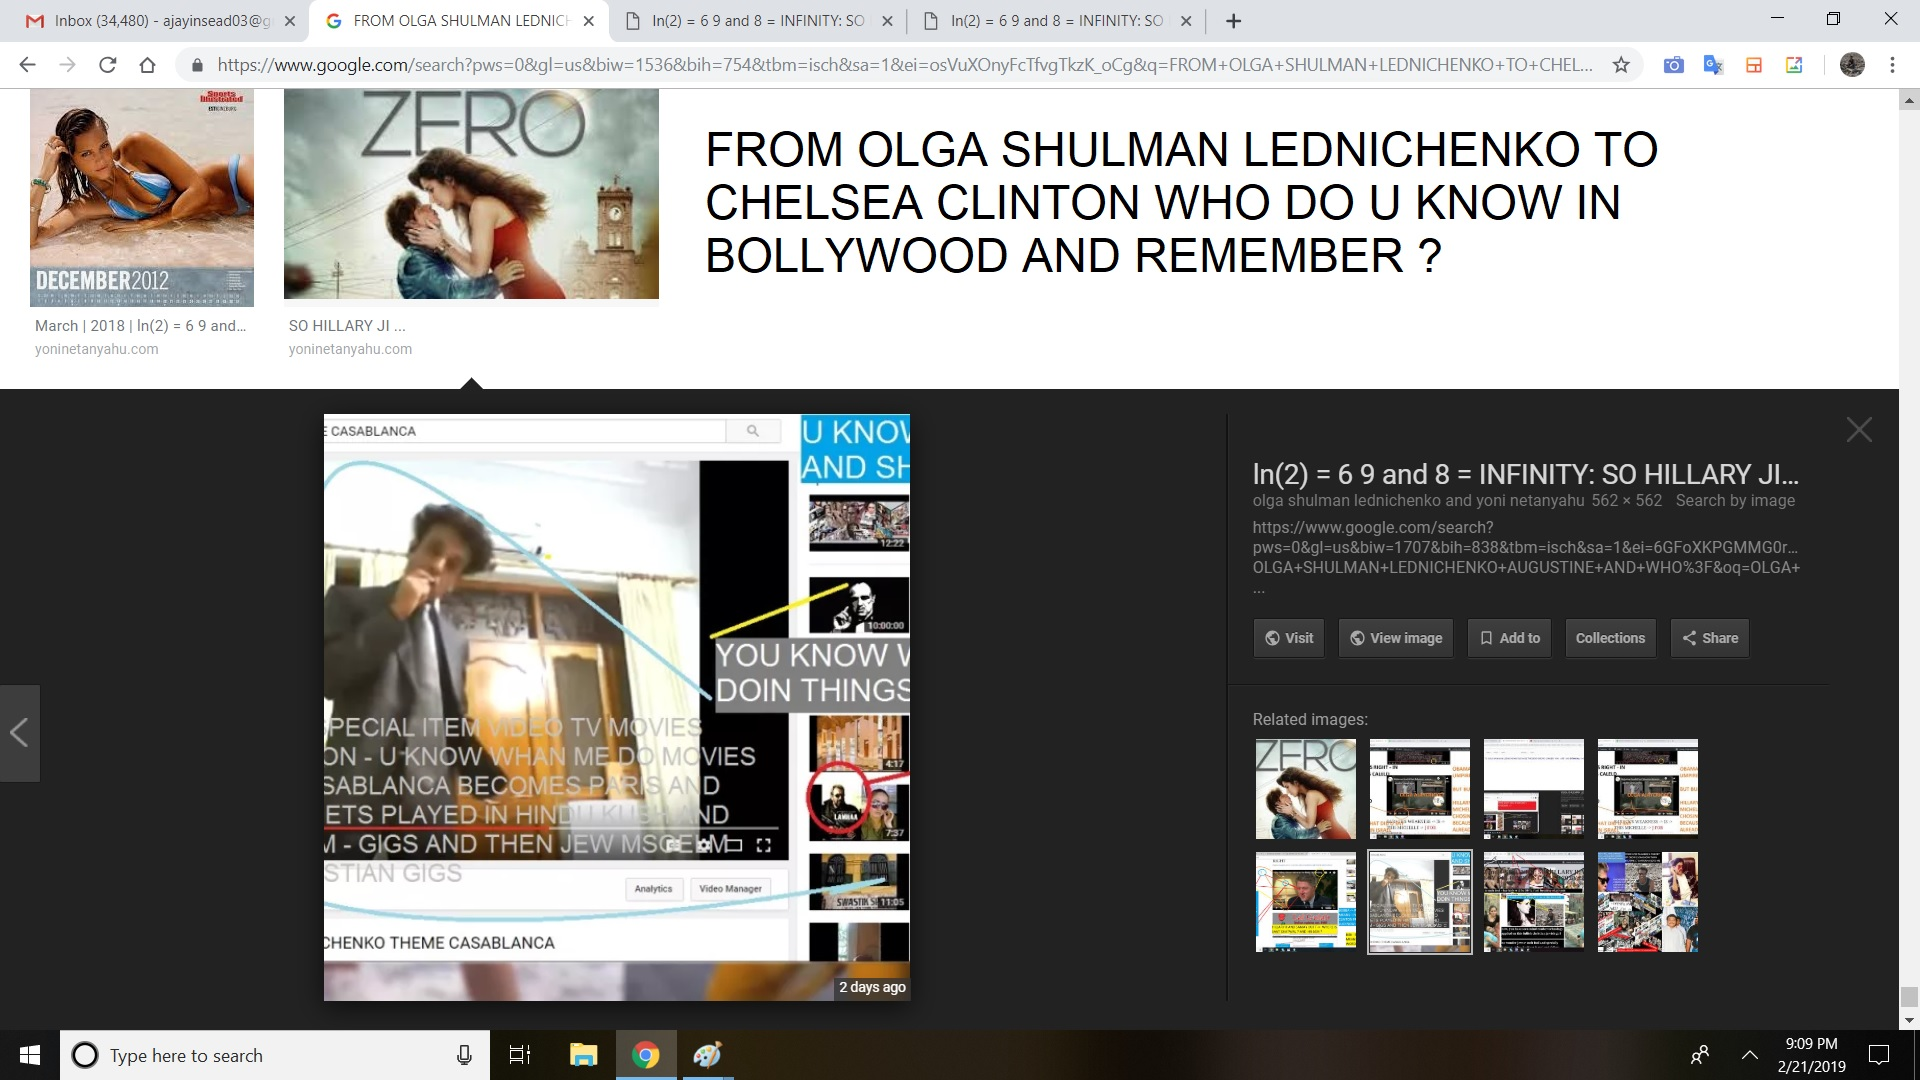 FROM OLGA SHULMAN LEDNICHENKO TO CHELSEA CLINTON WHO DO U KNOW IN BOLLYWOOD AND REMEMBER